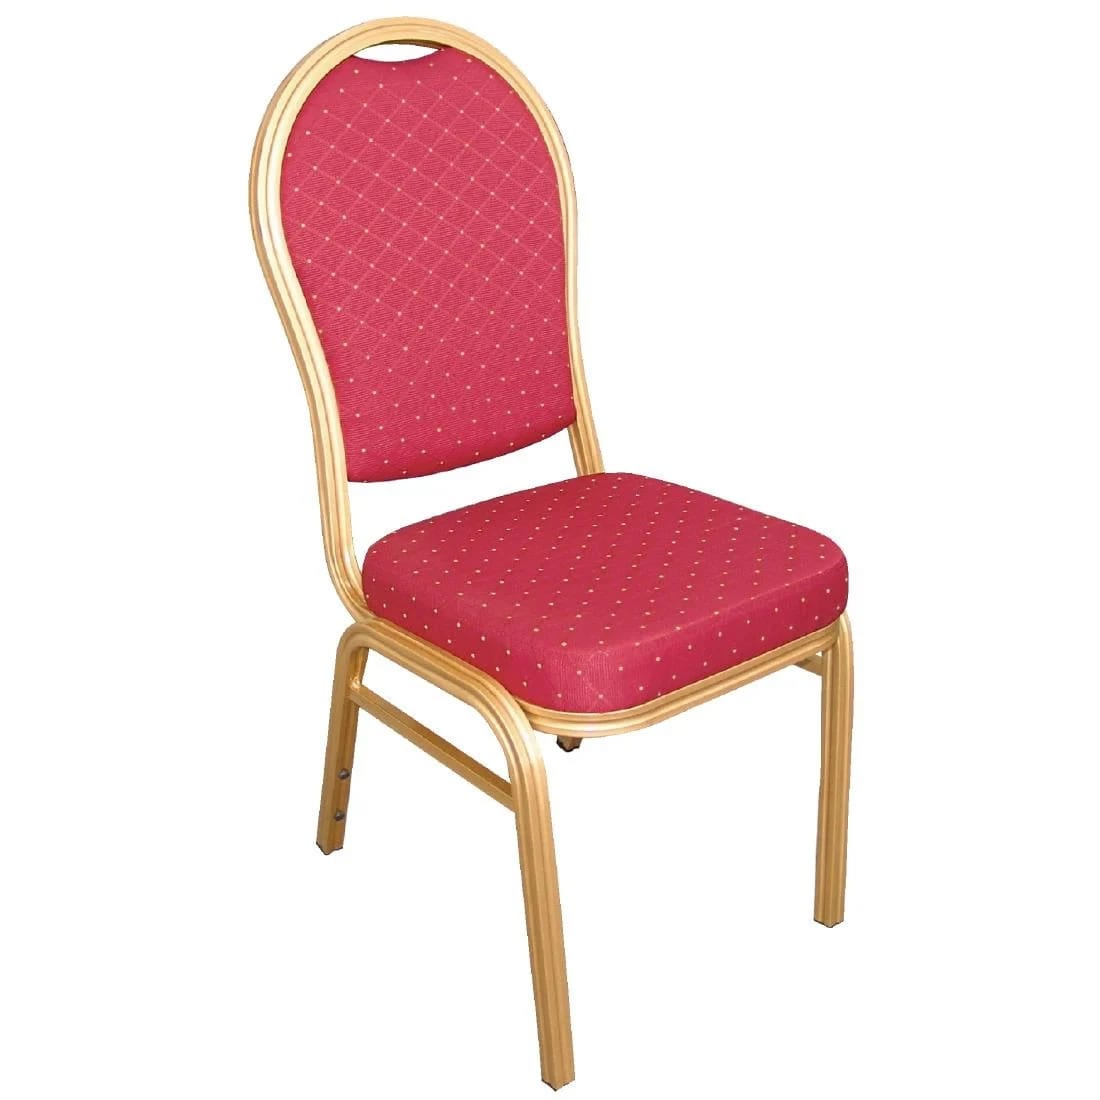 Brelone Set Of 4 Rounded Chairs Red Gold Frame